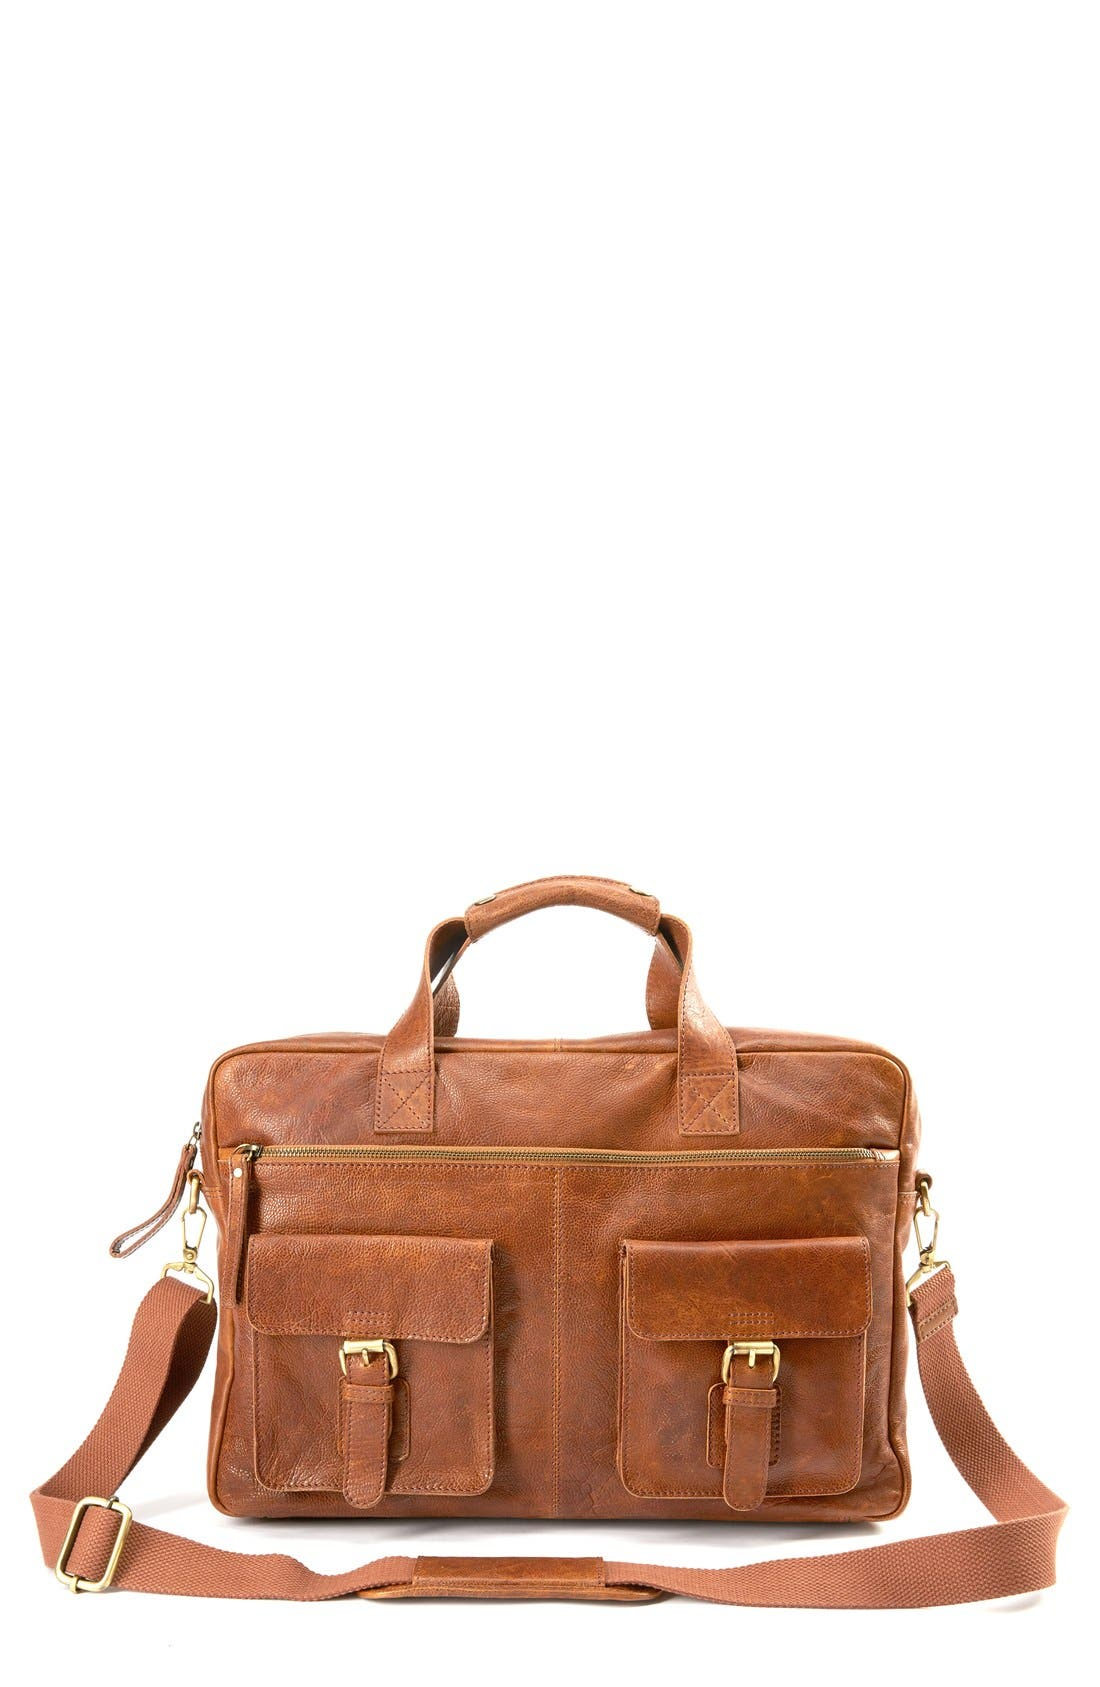 RAWLINGS 'Rugged' Briefcase